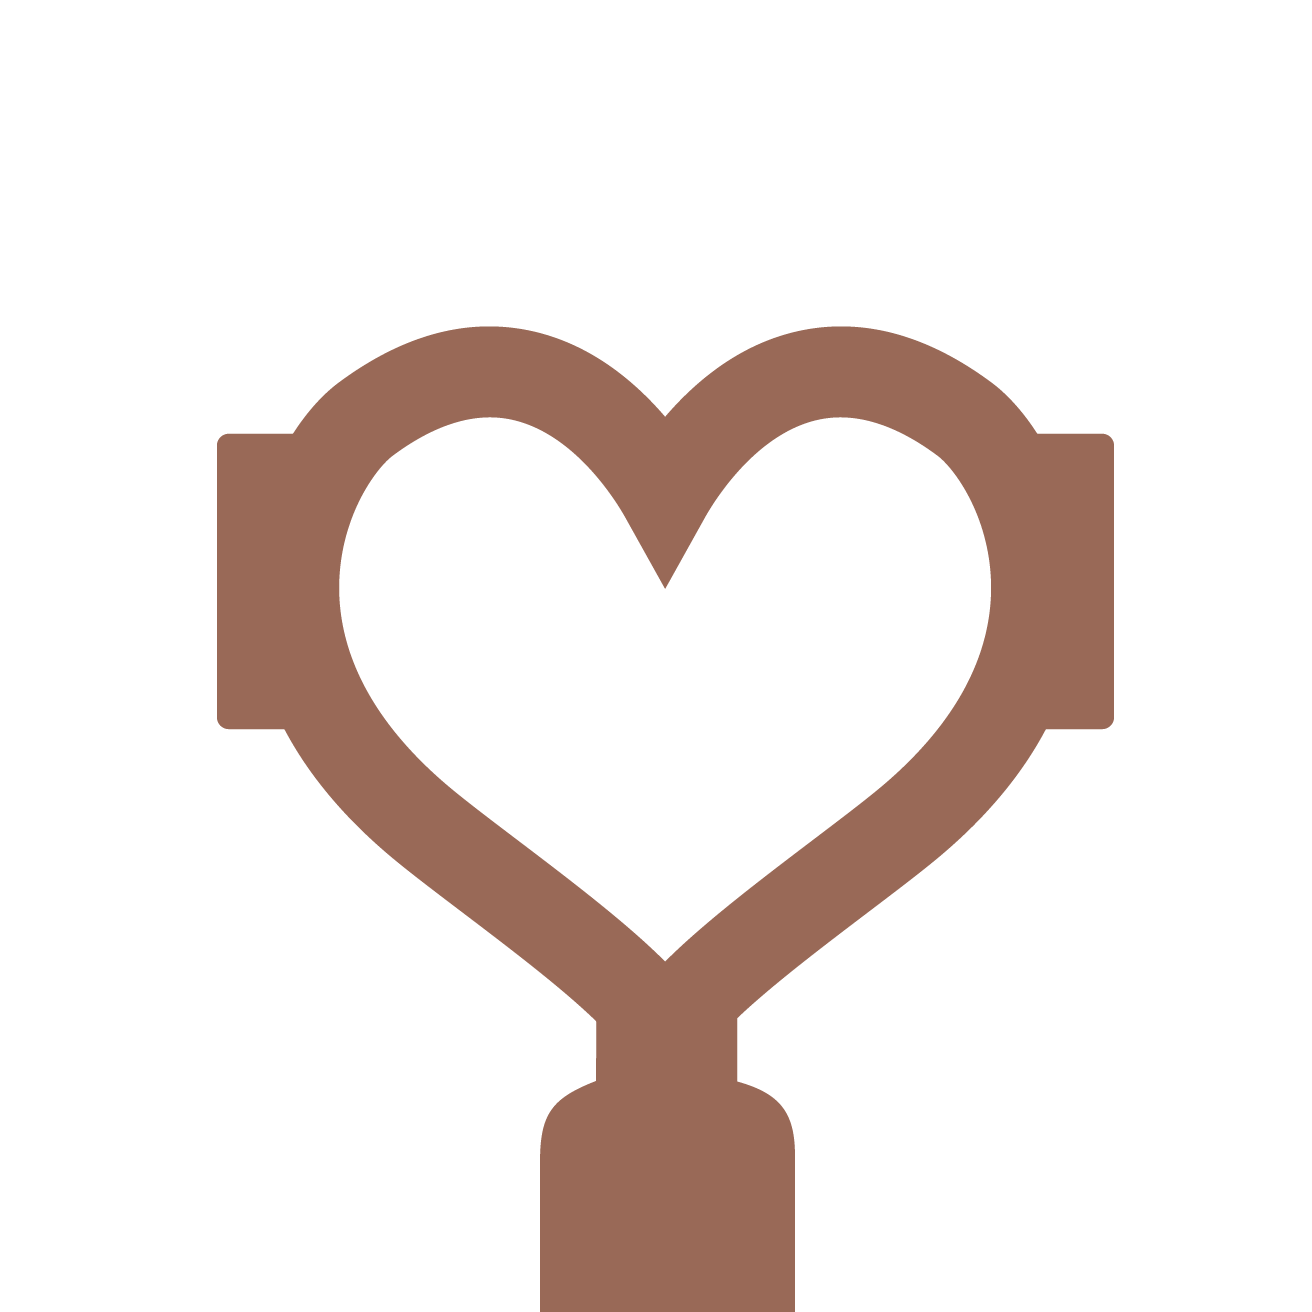 ECM Olive Wood handle set with rotary valves